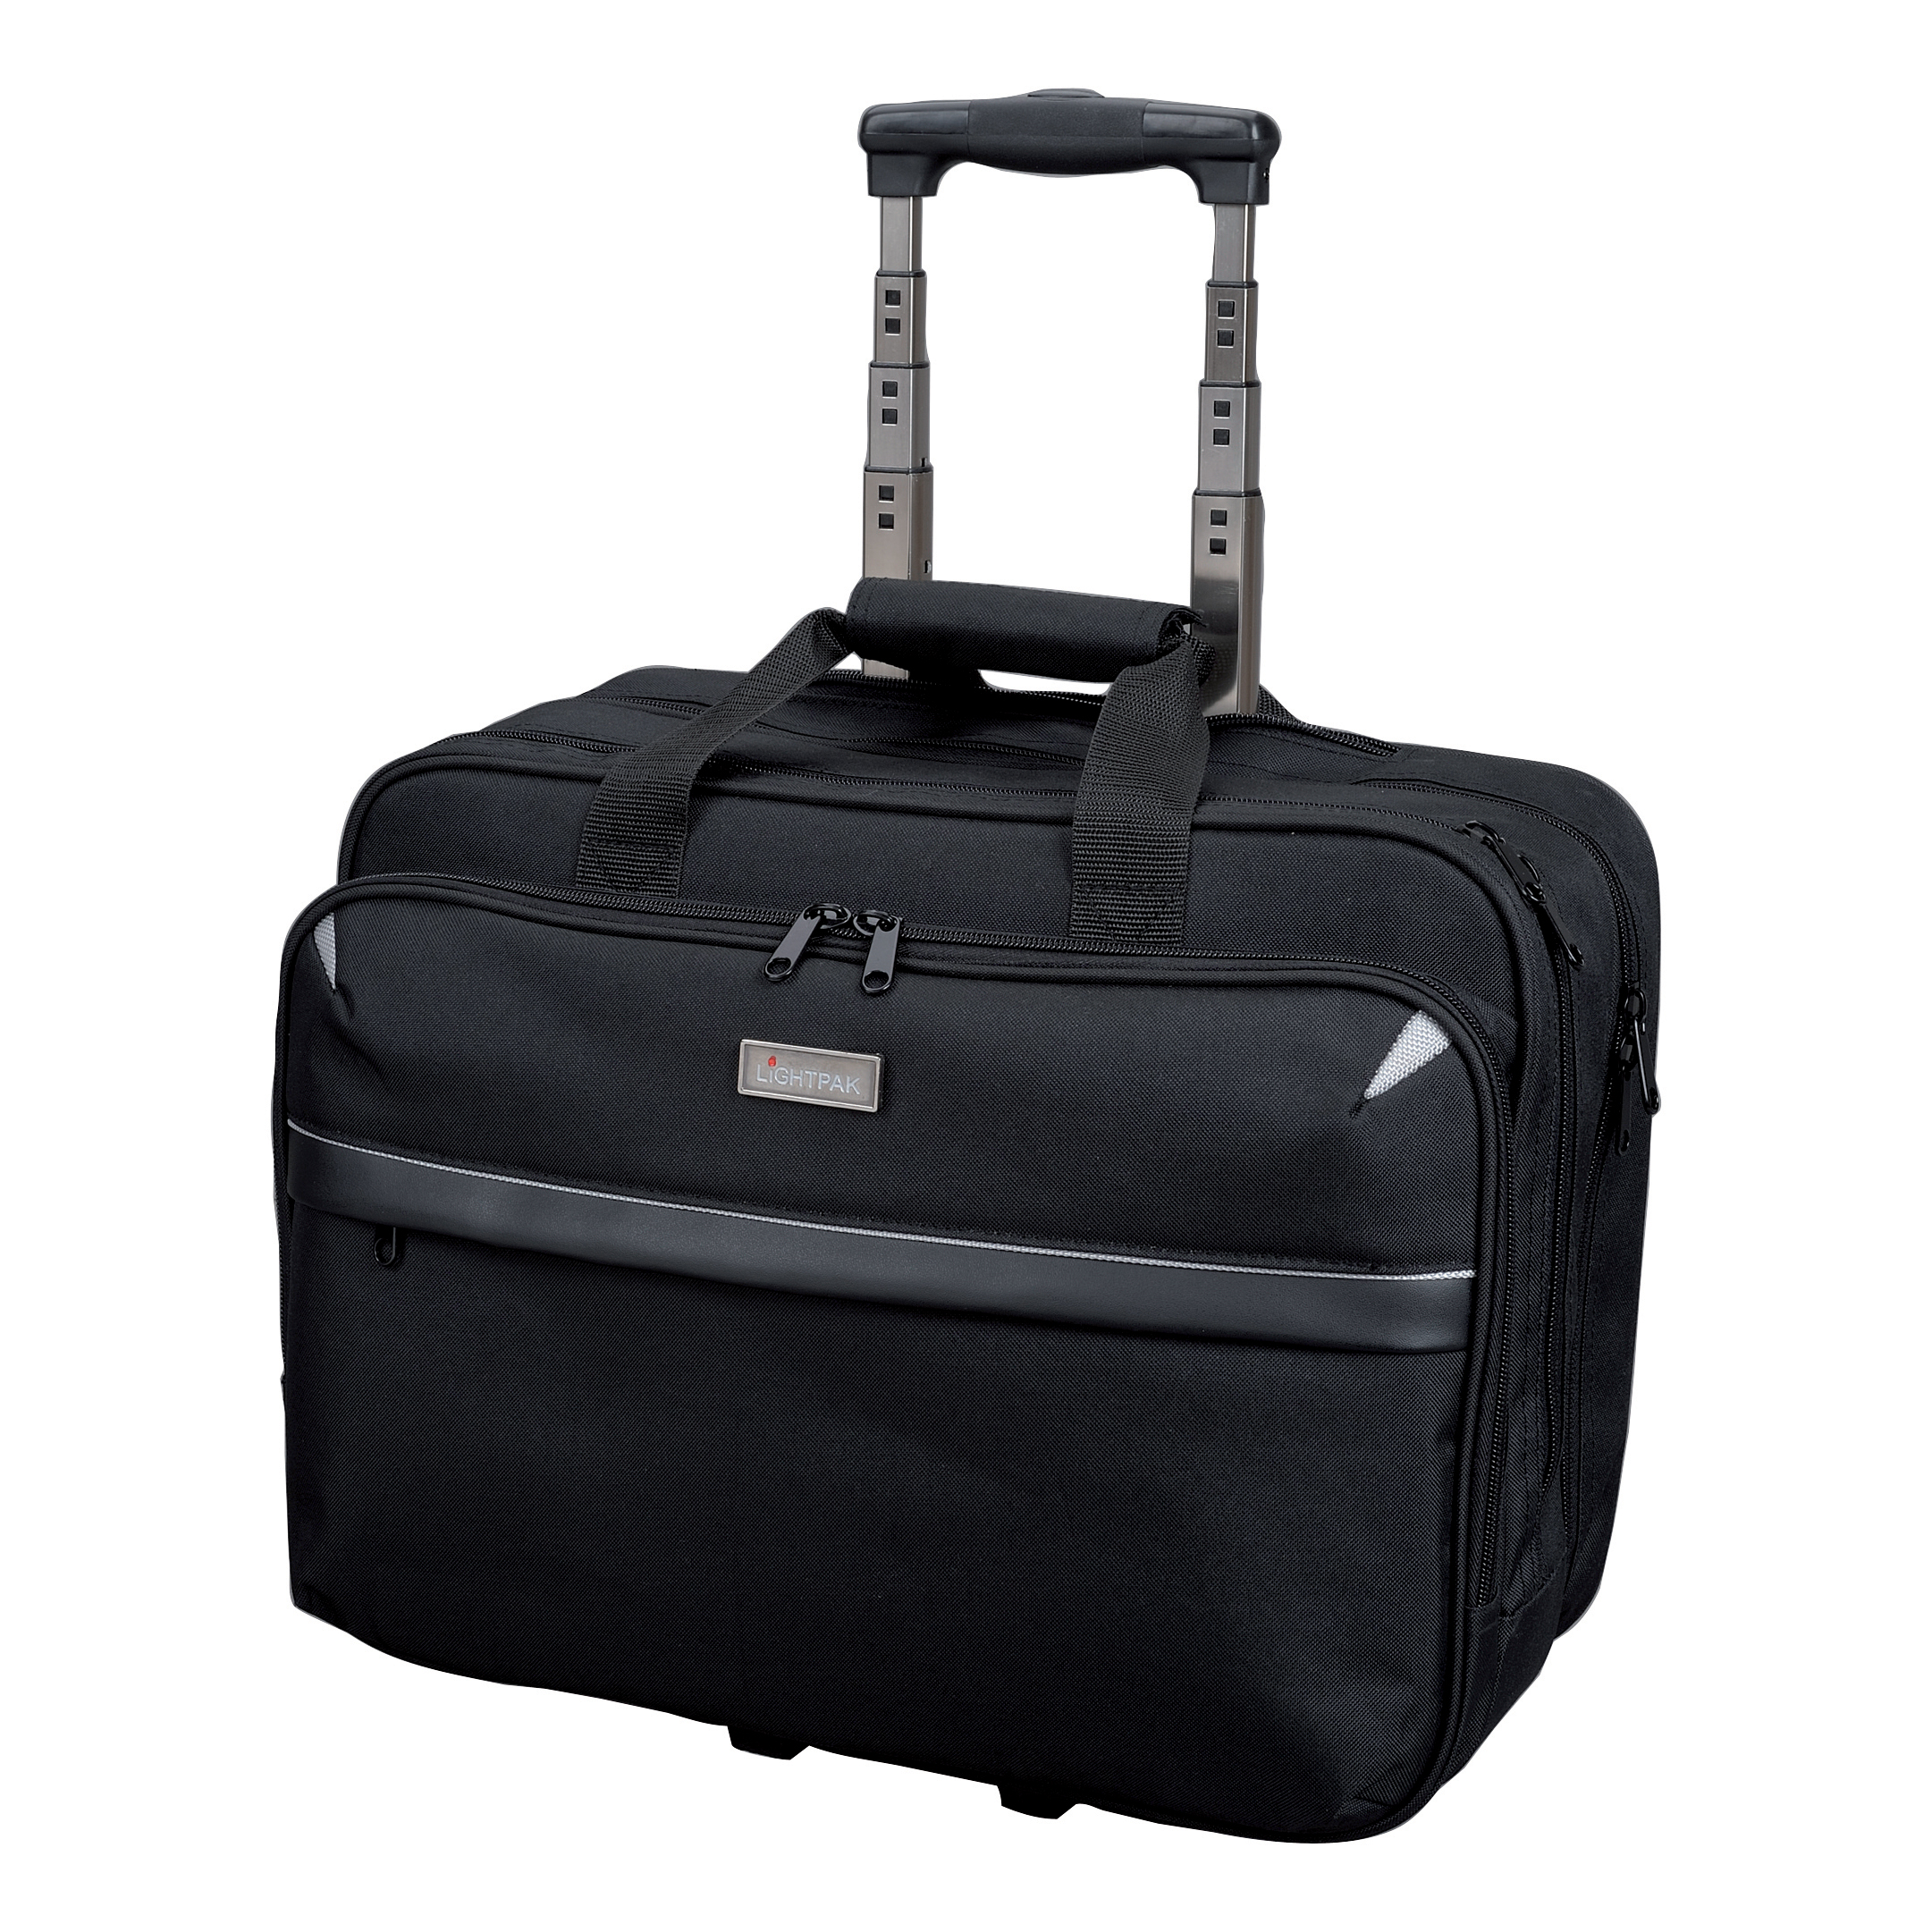 Briefcases & Luggage Lightpak Business Trolley Bag with Laptop Compartment Nylon Capacity 17in Black Ref 46099